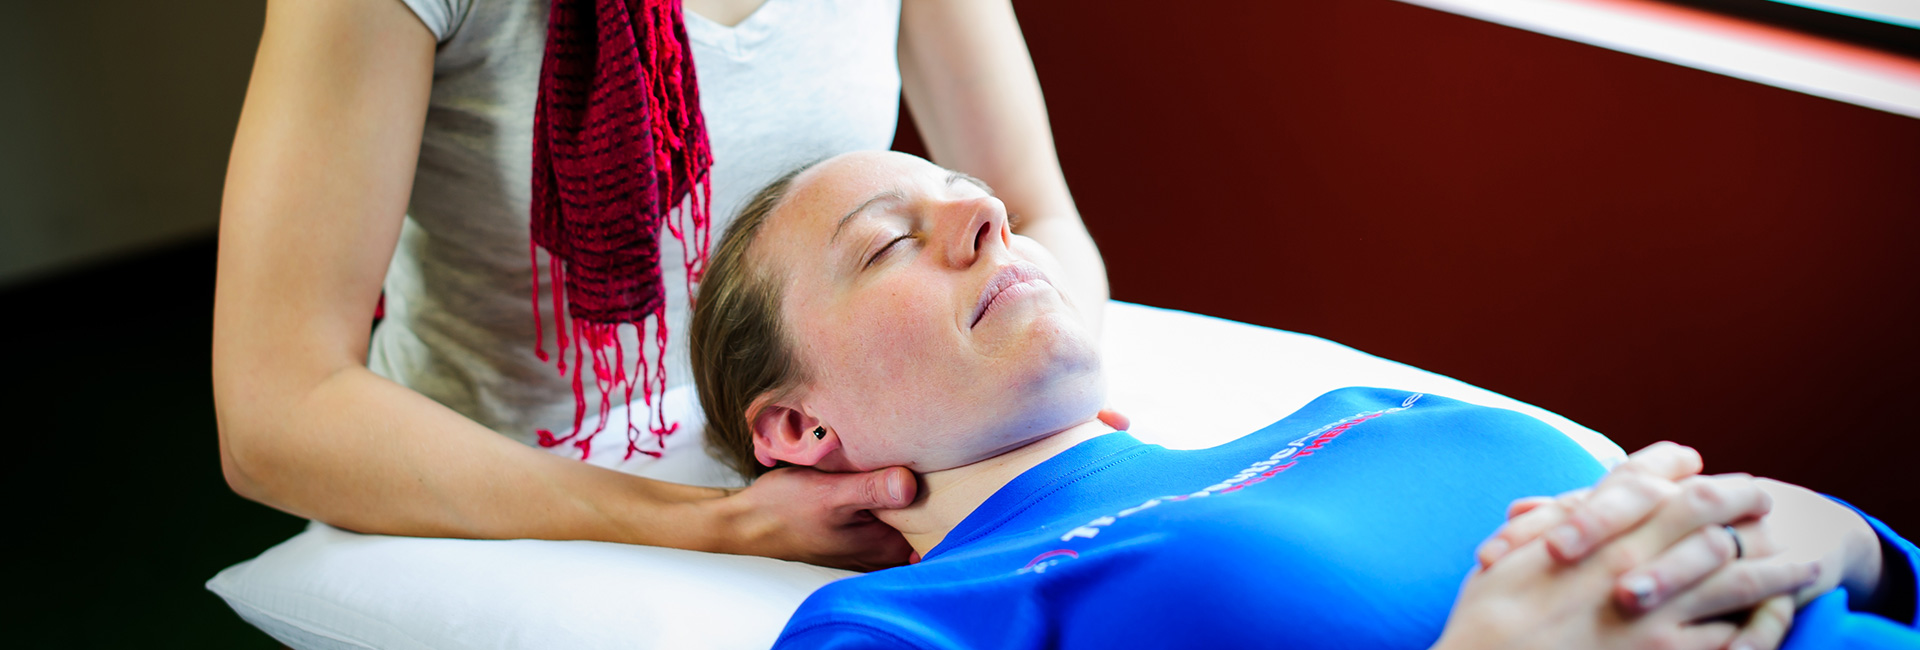 Therapeutic-Associates-Physical-Therapy---Manual-Therapy